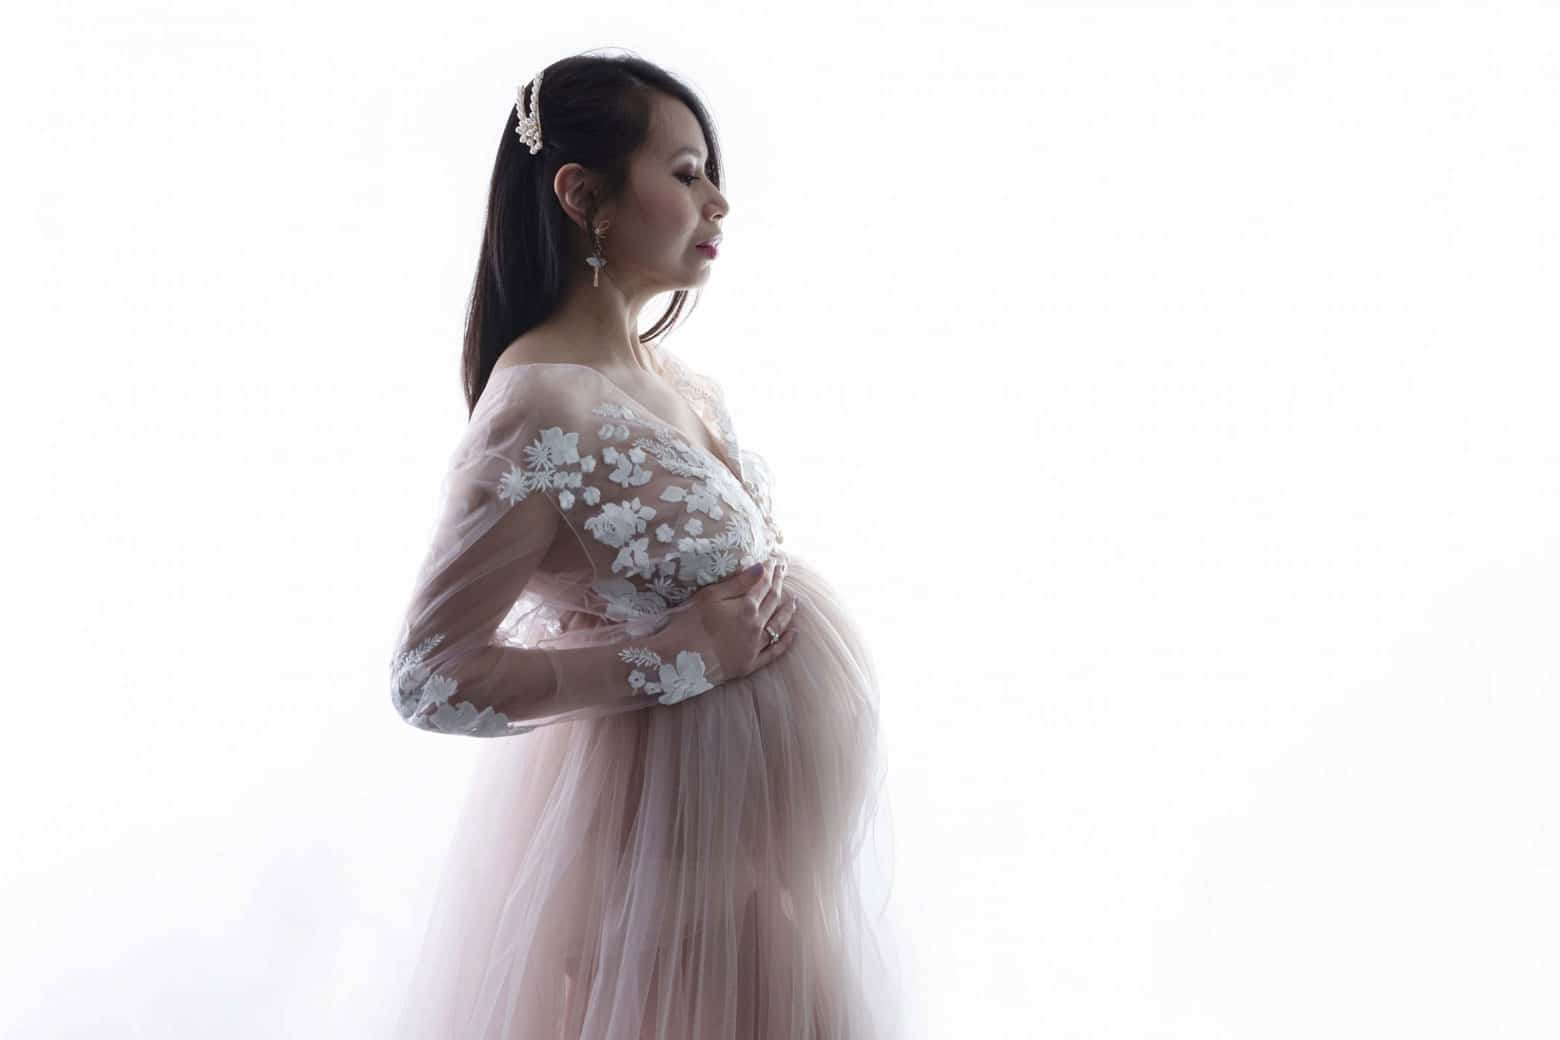 maternity photoshoot in a studio in white dress and background photographed by Newborn Photographer Manchester